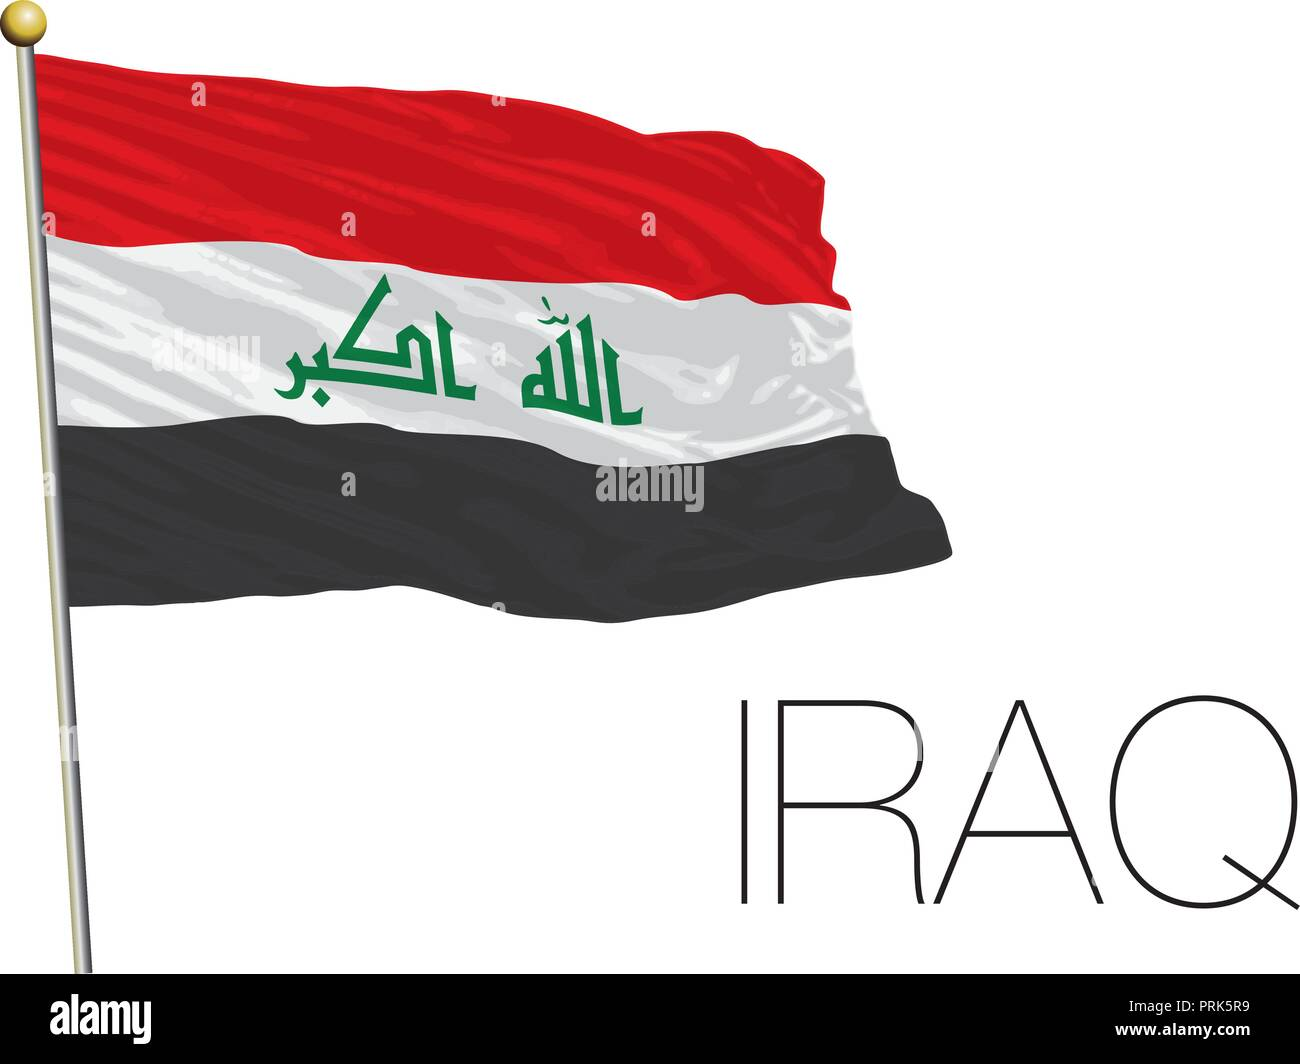 Iraq official flag, vector illustration - Stock Image